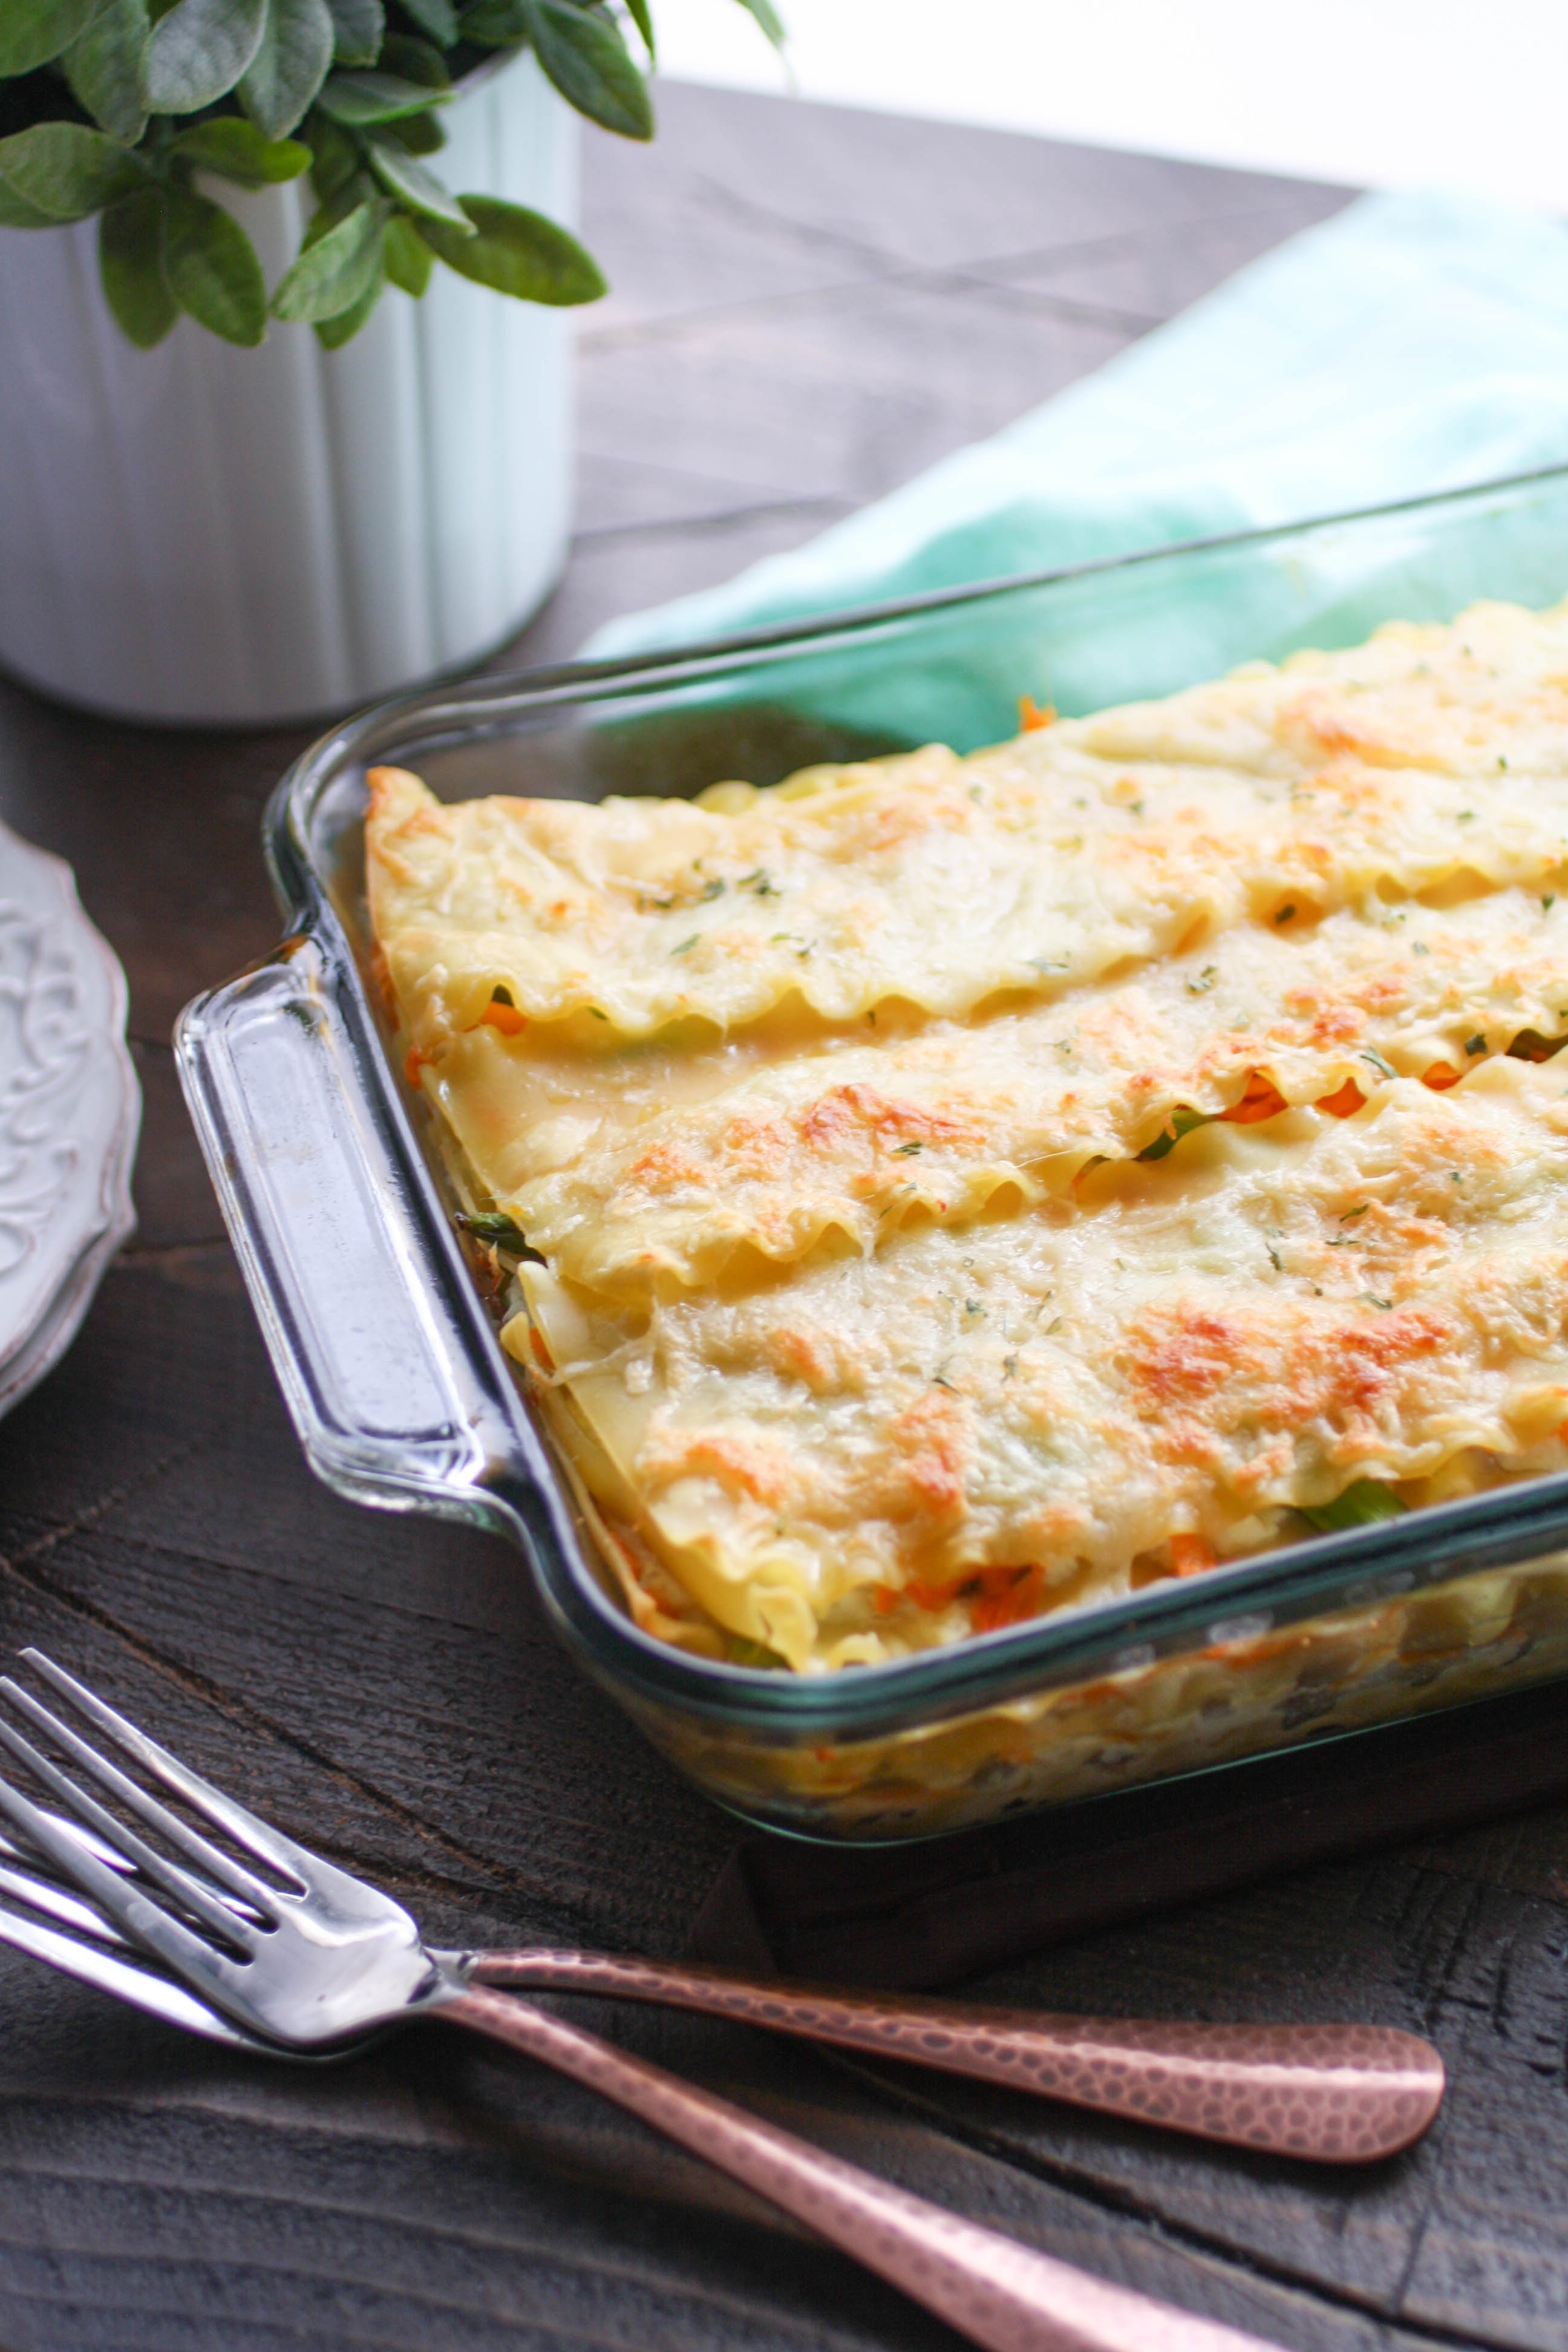 Asparagus and Sweet Potato Lasagna is a dish you should make soon. You'll love how creamy and flavorful this Asparagus and Sweet Potato Lasagna is!